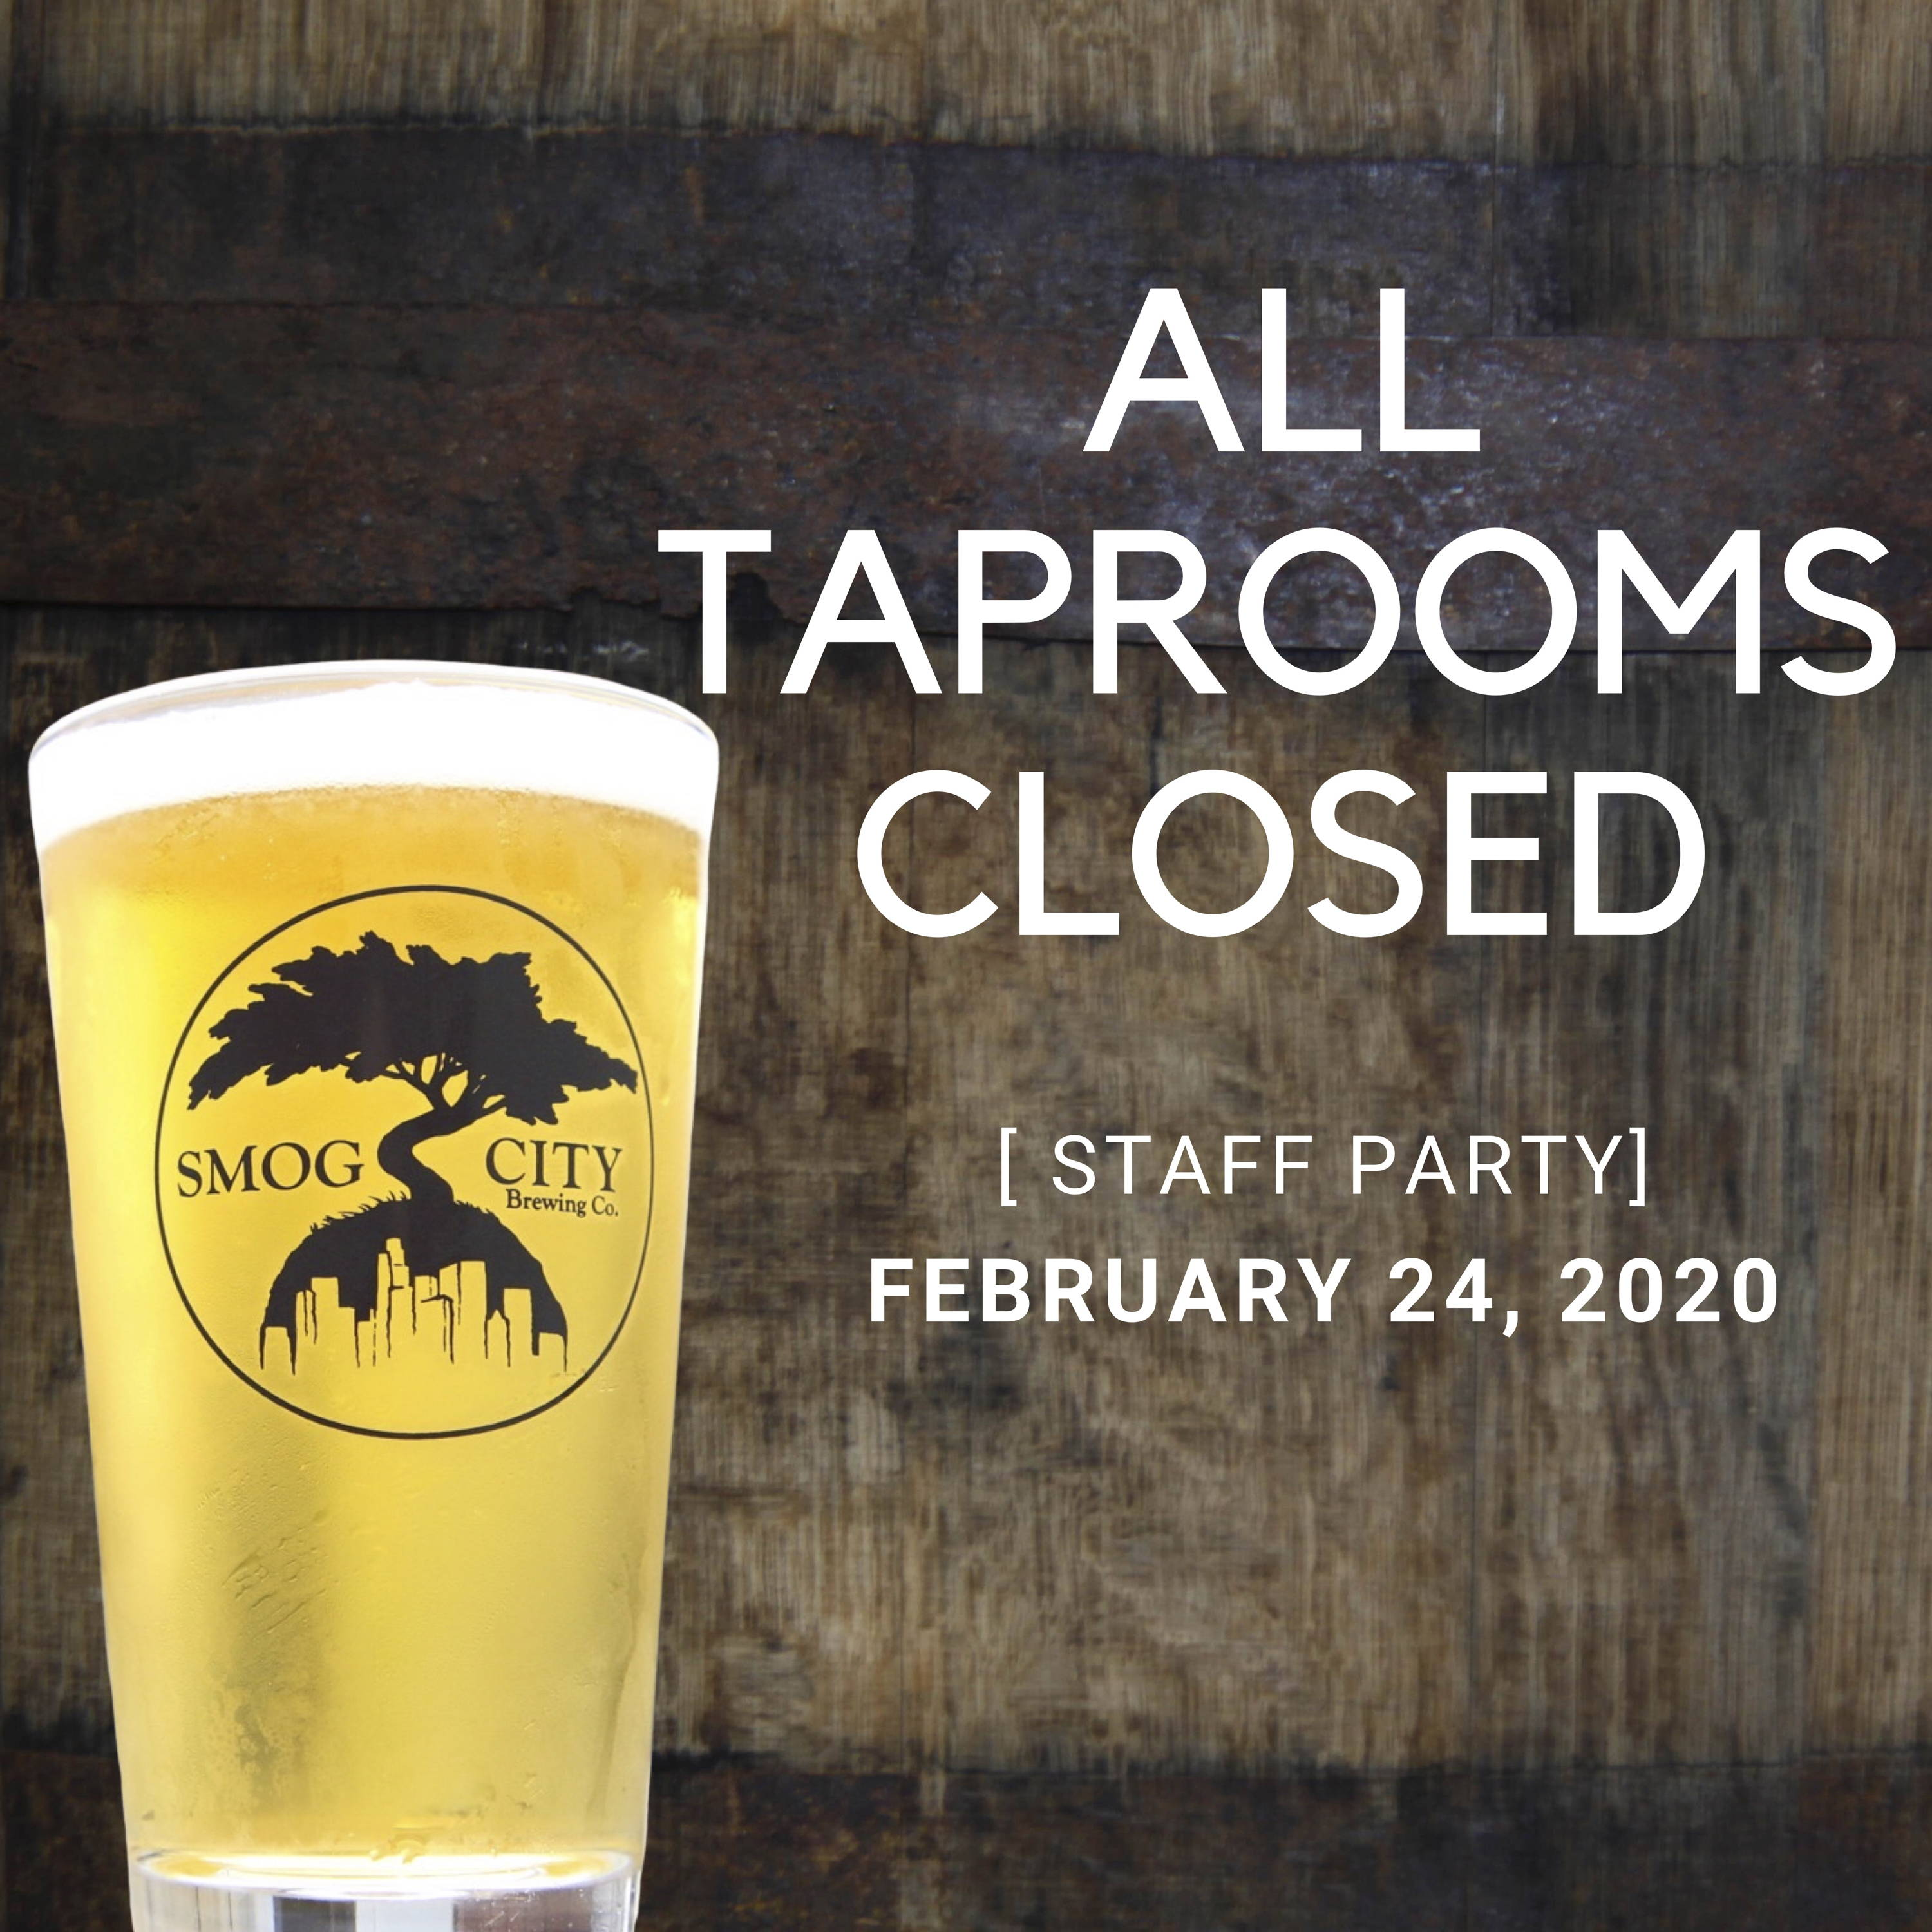 a barrel can be seen in the background with a glass of smog city beer. the text reads staff party. all taprooms closed. february 24, 2020